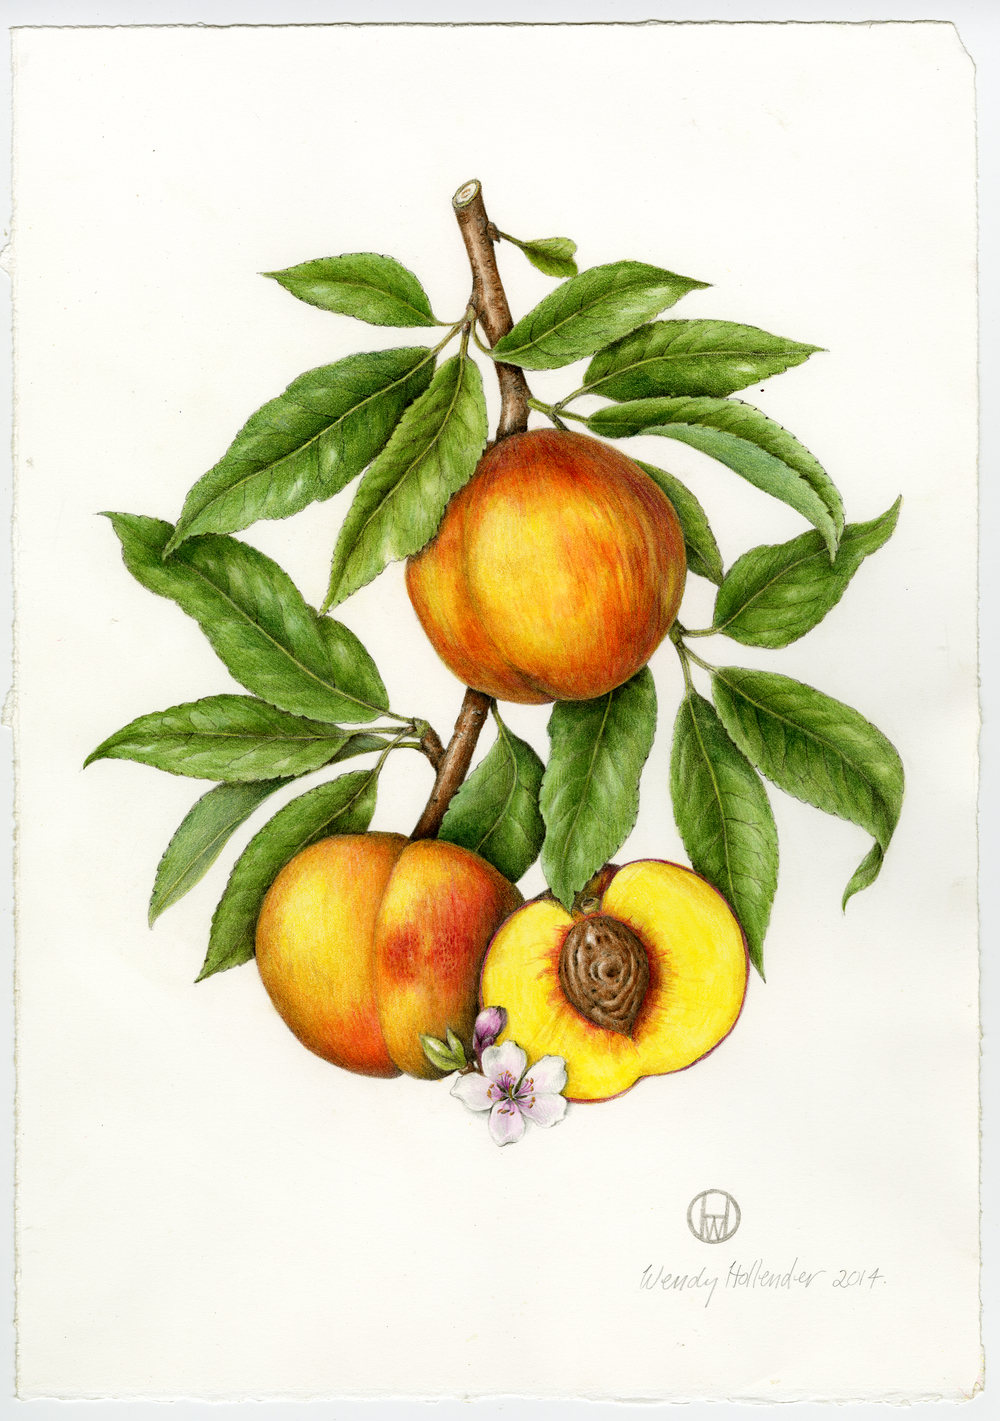 Bramble & Vine: Original Illustration of Peach